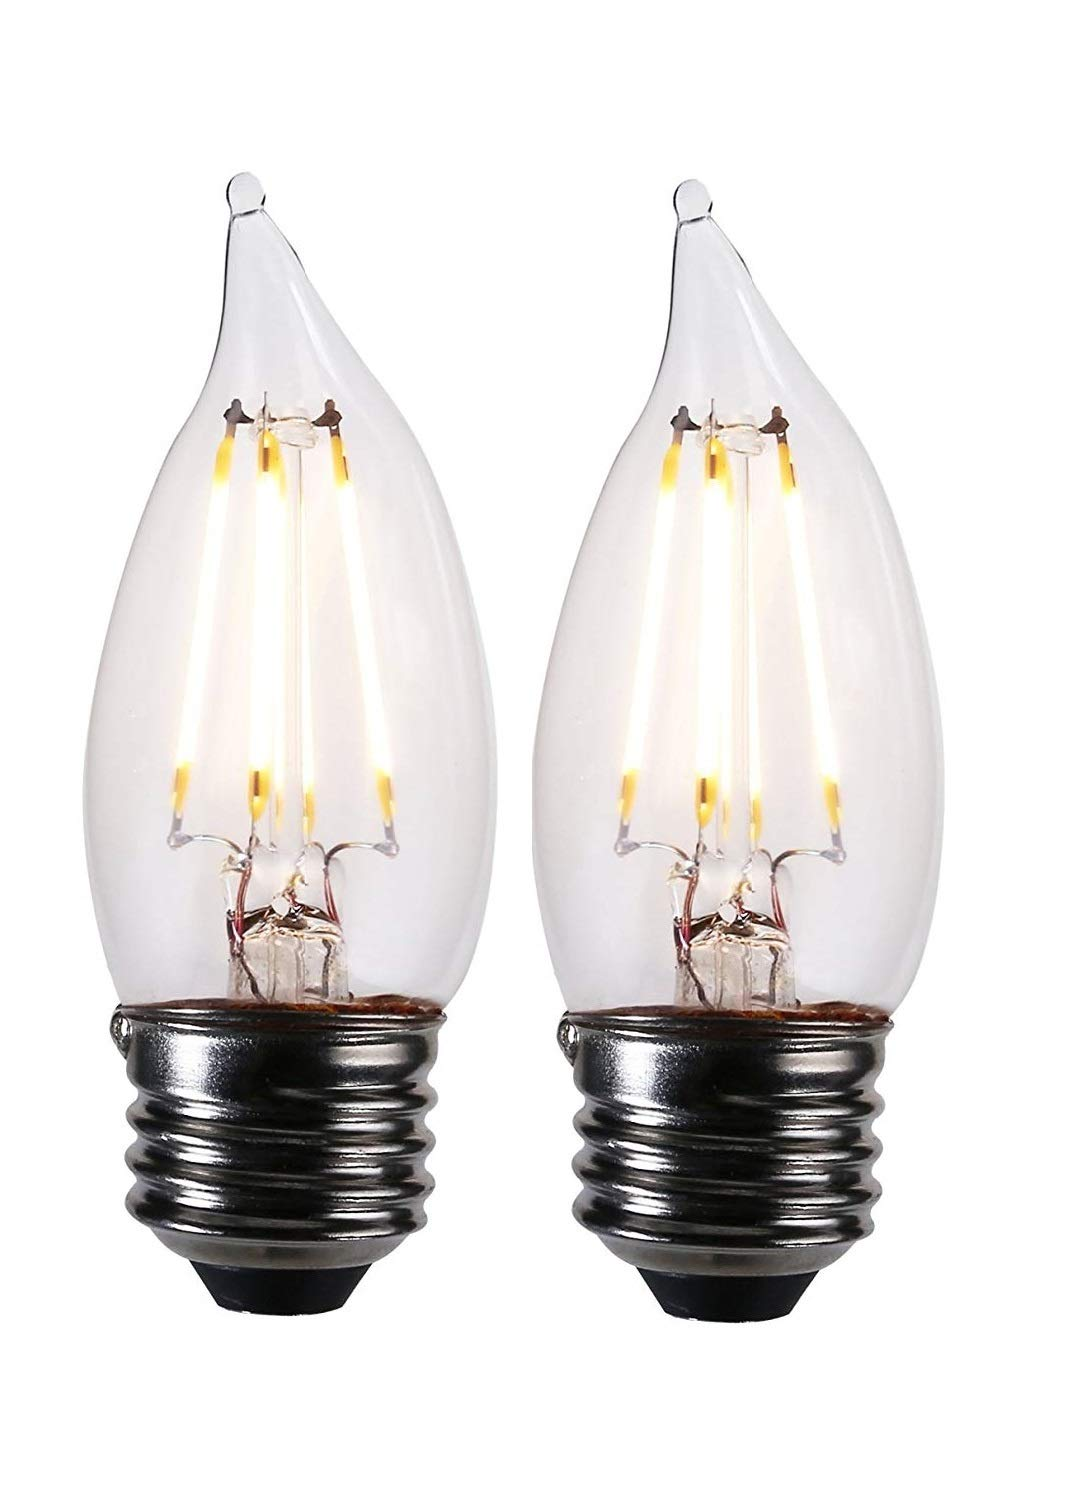 LED Flame Tip Lightbulbs